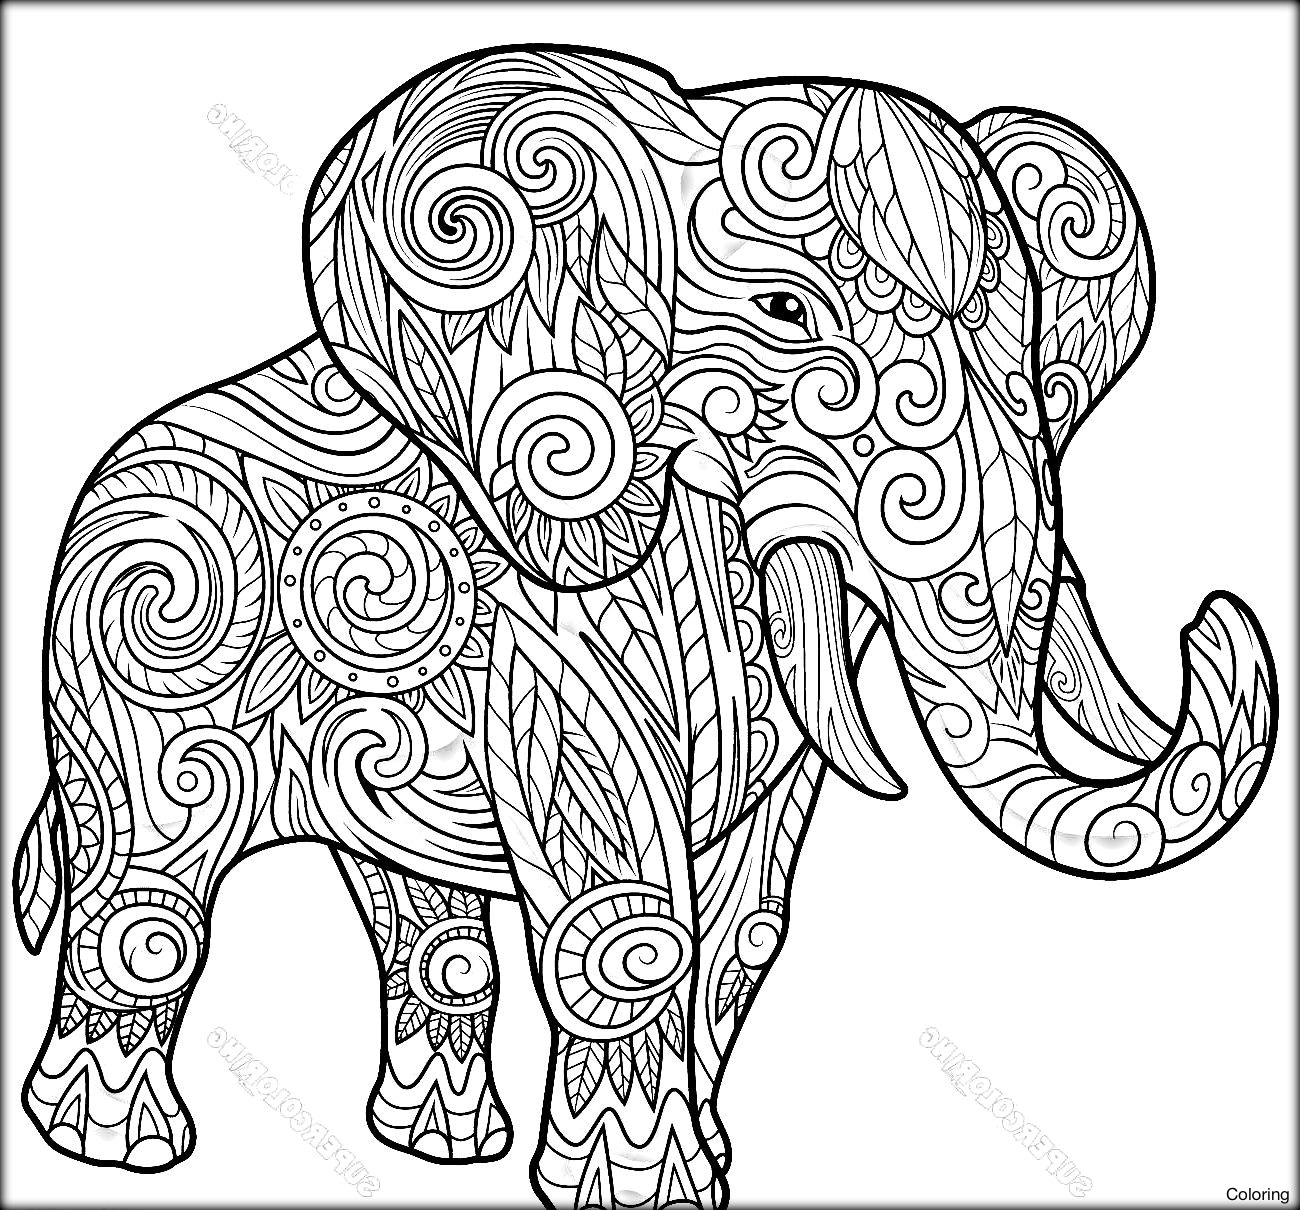 coloring sheet elephant mandala coloring pages elephant mandala coloring pages collection free coloring coloring sheet elephant mandala coloring pages